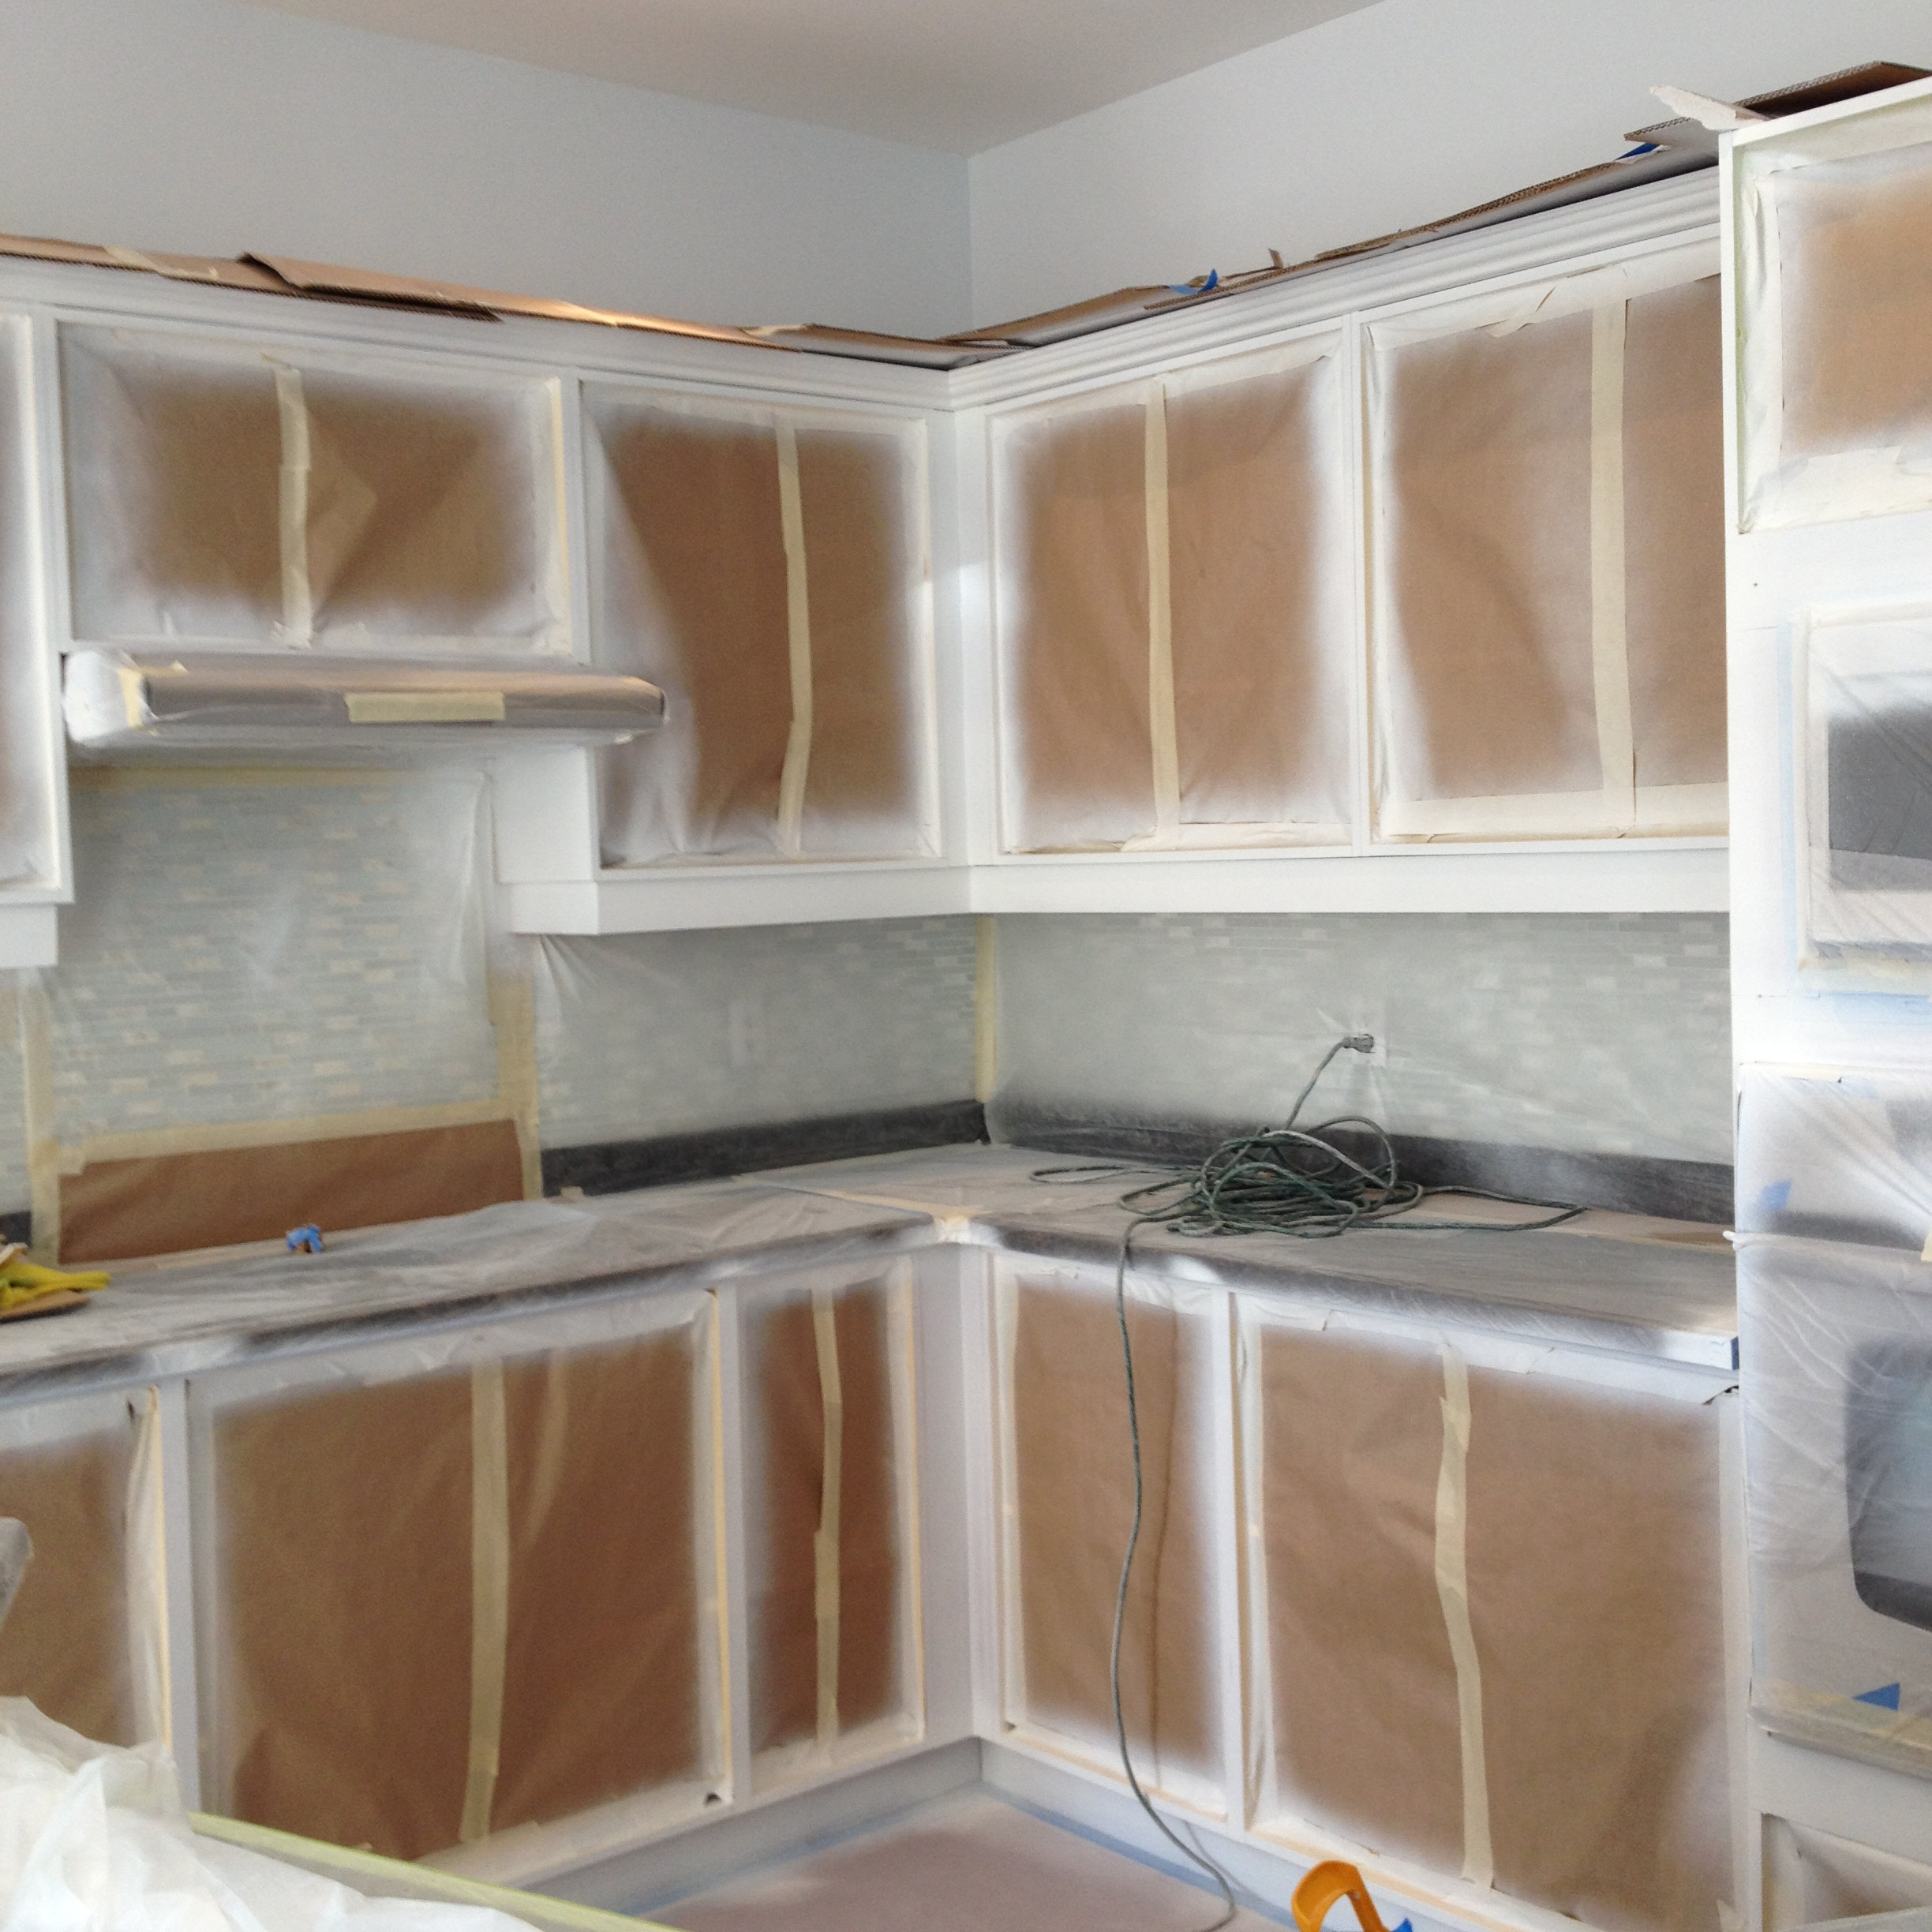 Spray Painting Cabinets